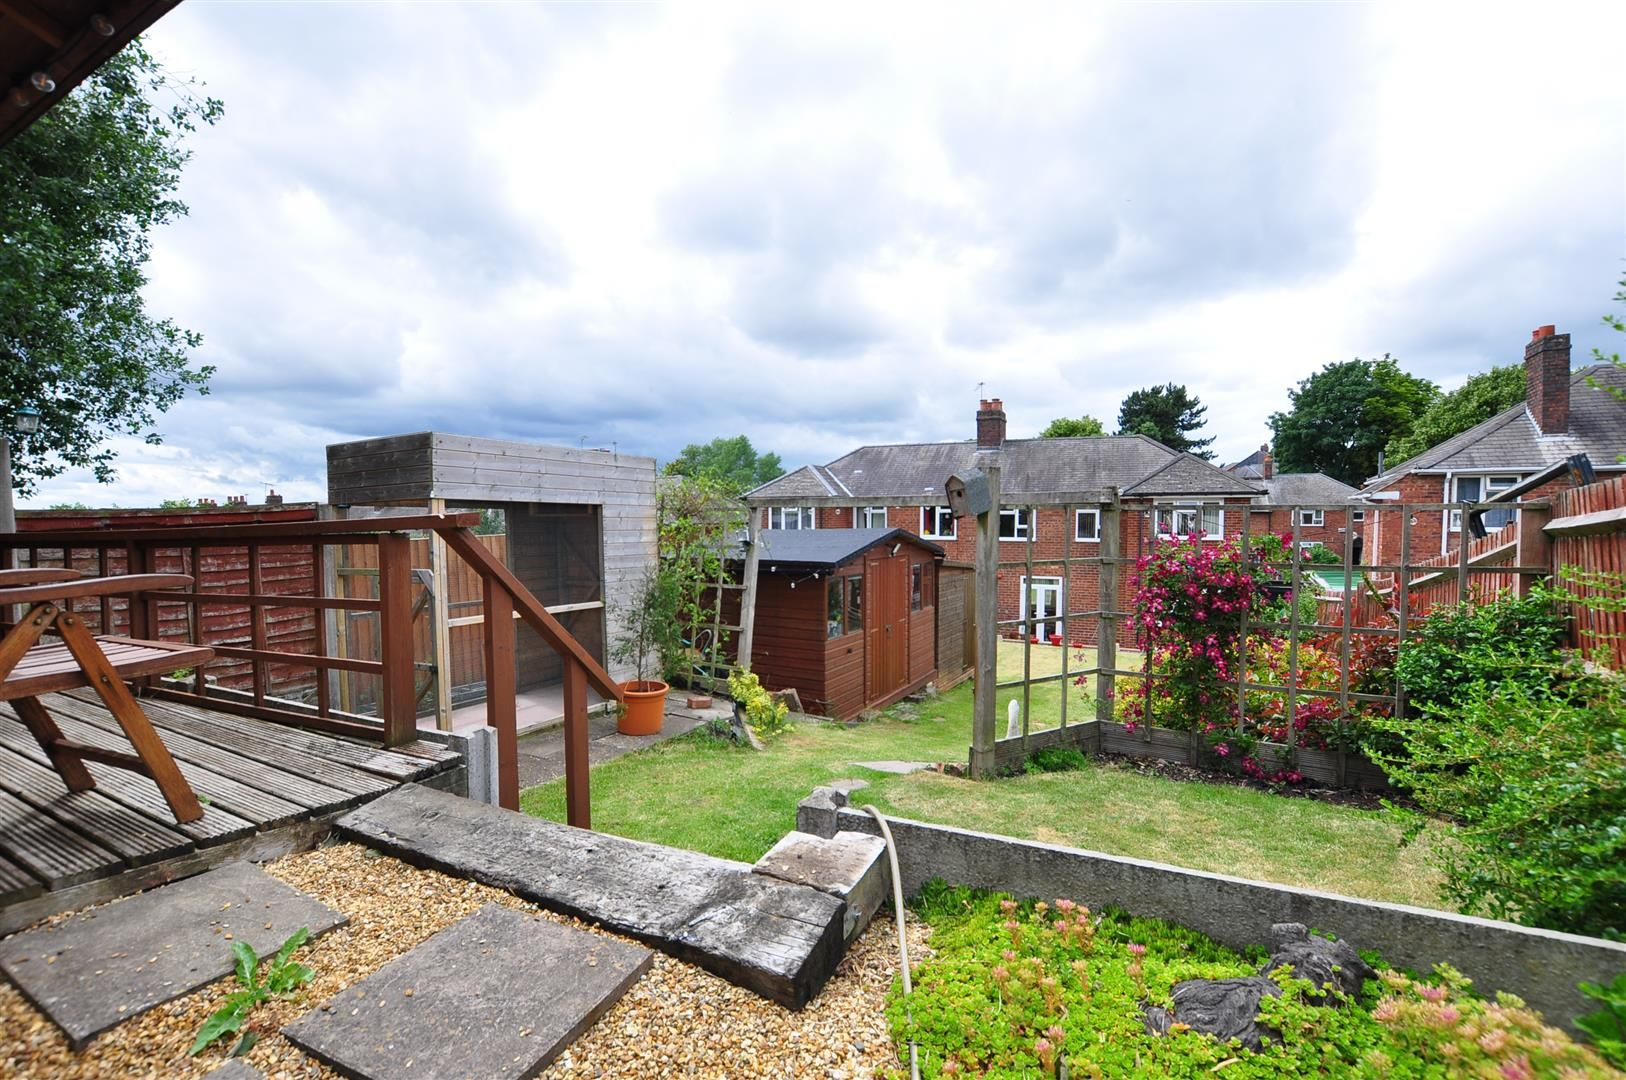 3 bed semi-detached for sale in Lower Gornal 19